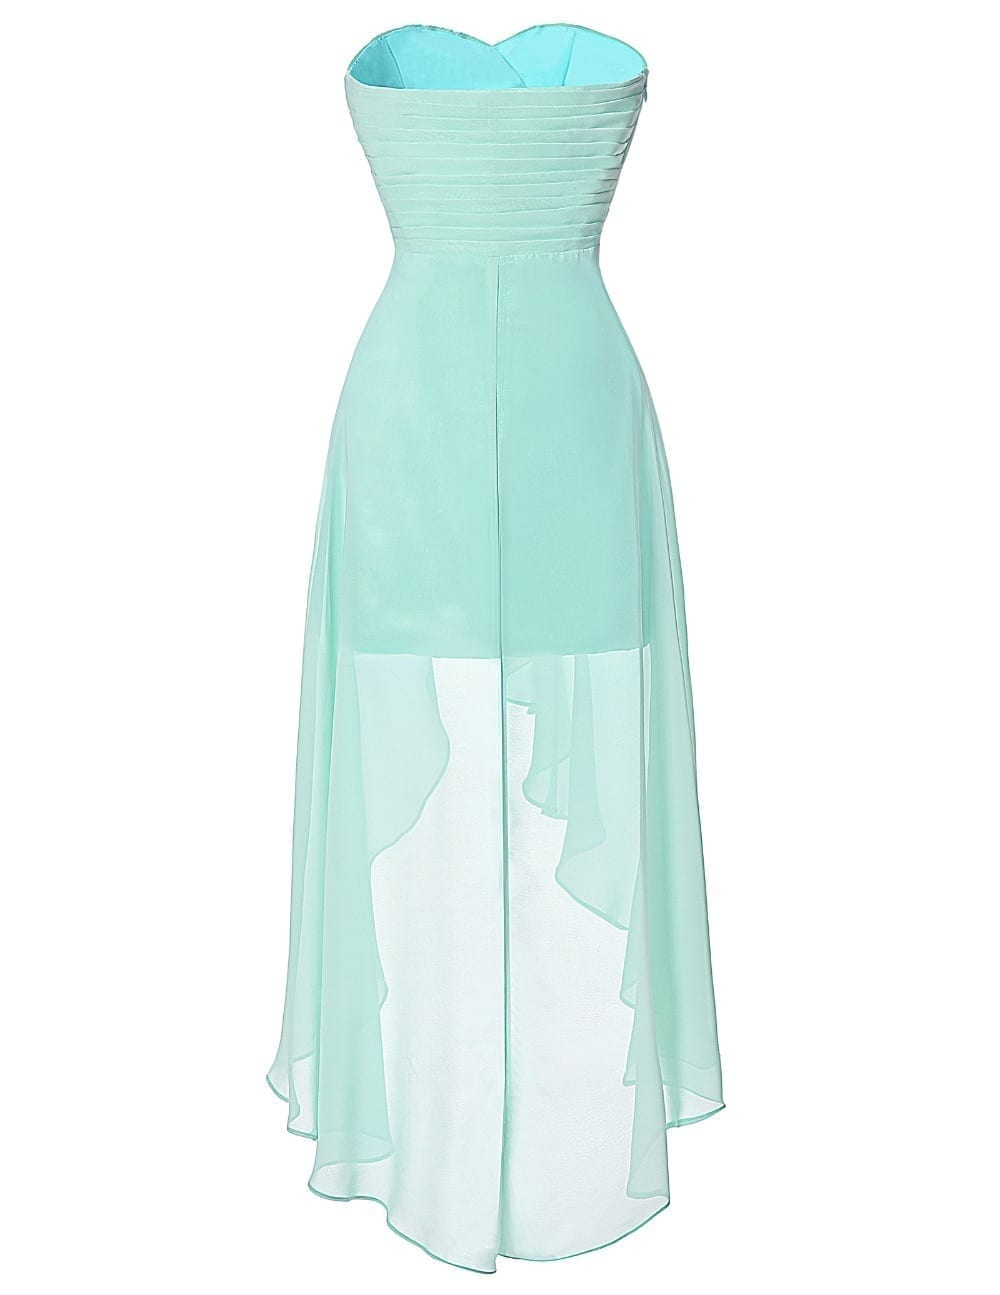 Turquoise Strapless Short Front Long